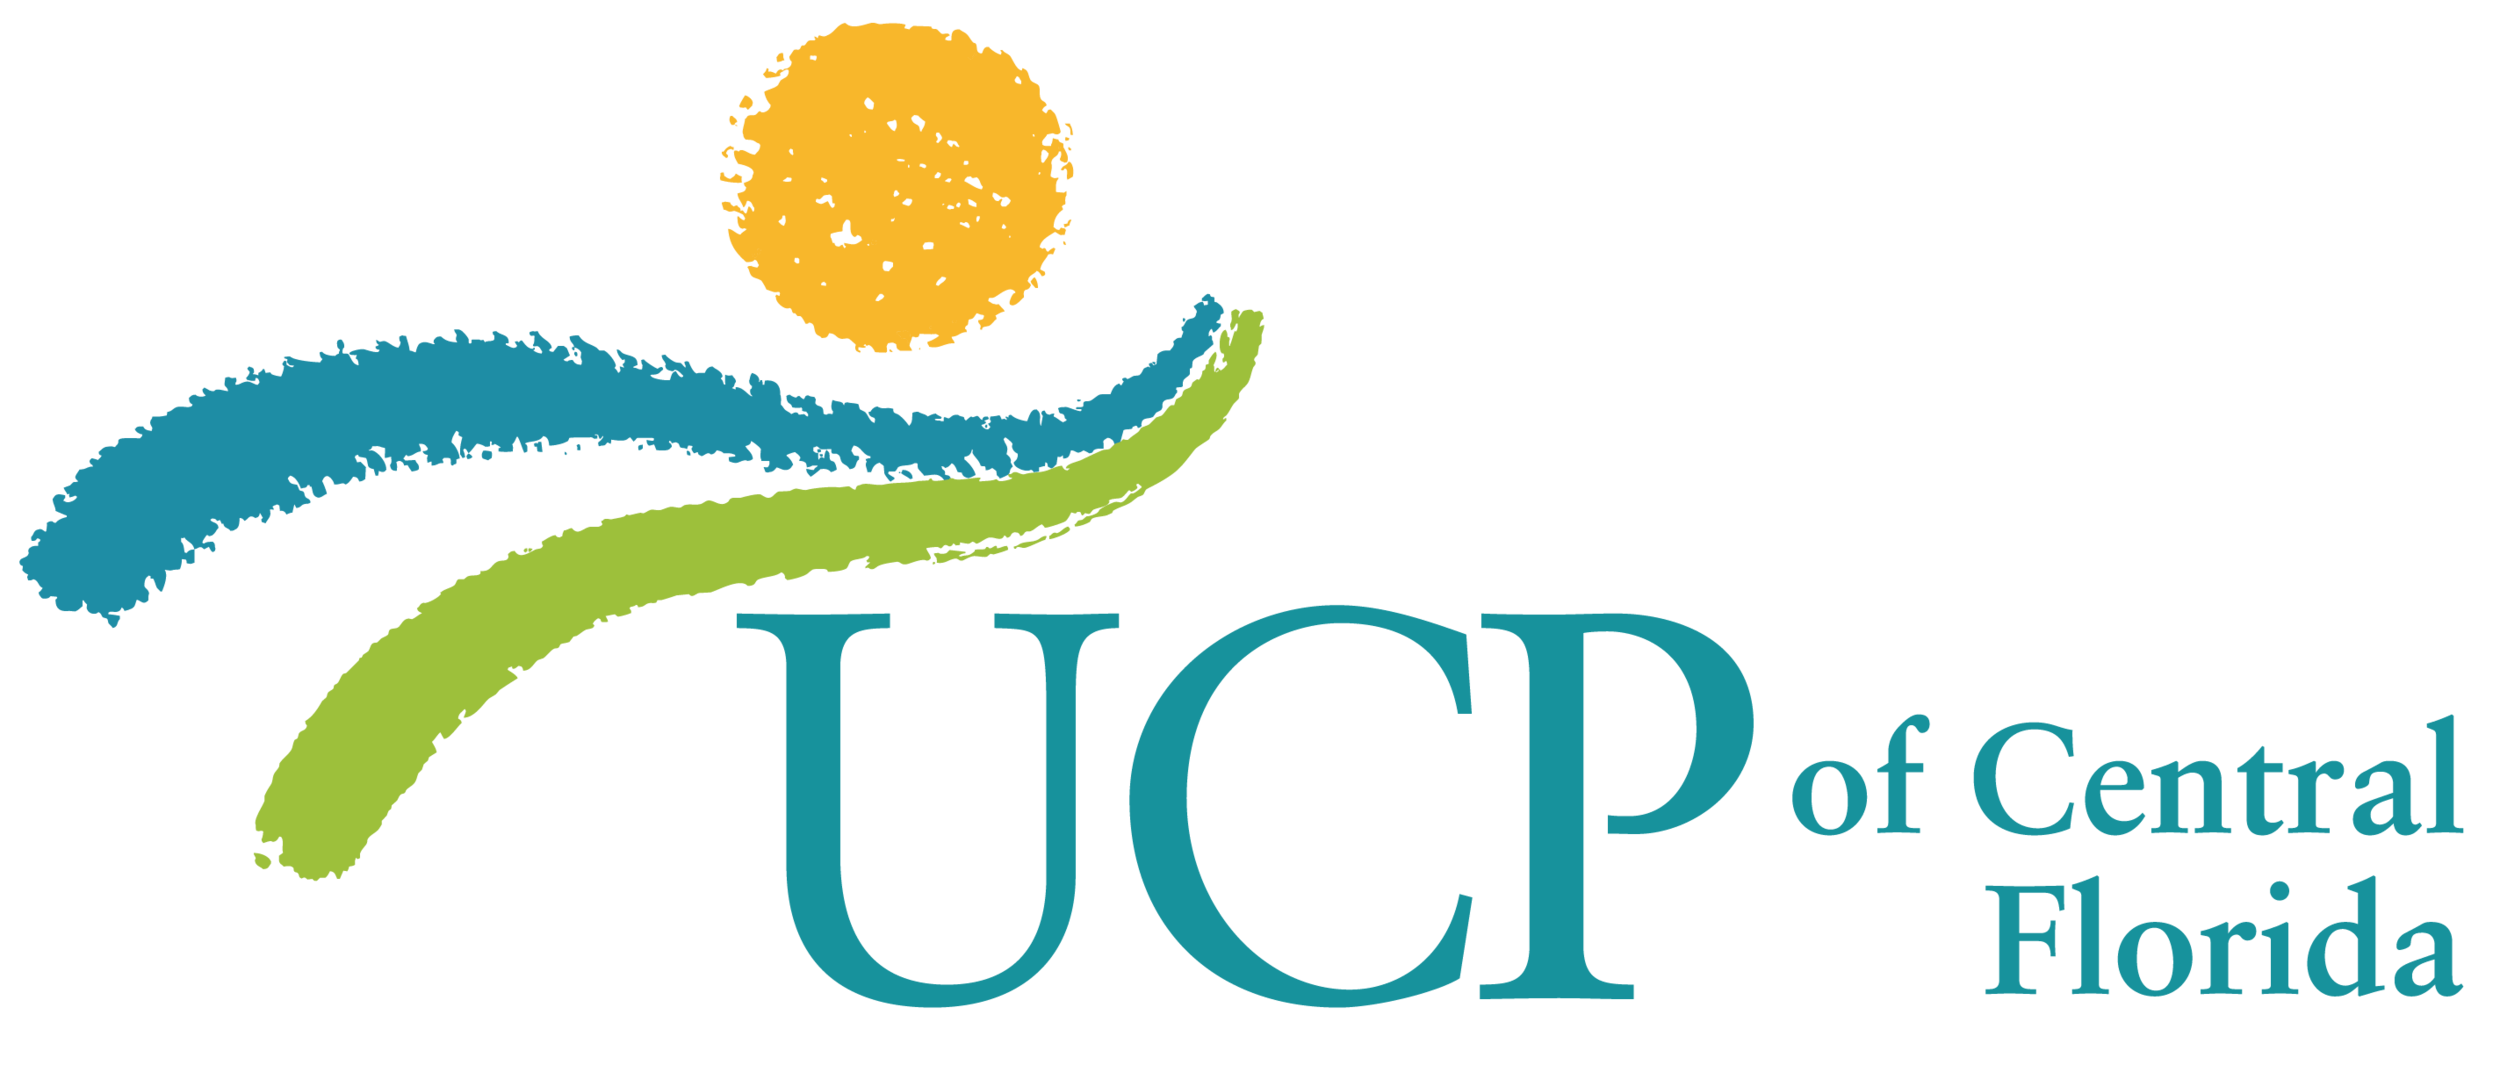 PRESS RELEASE - UCP provides $20,000 in assistive technology equipment to its children with disabilities.